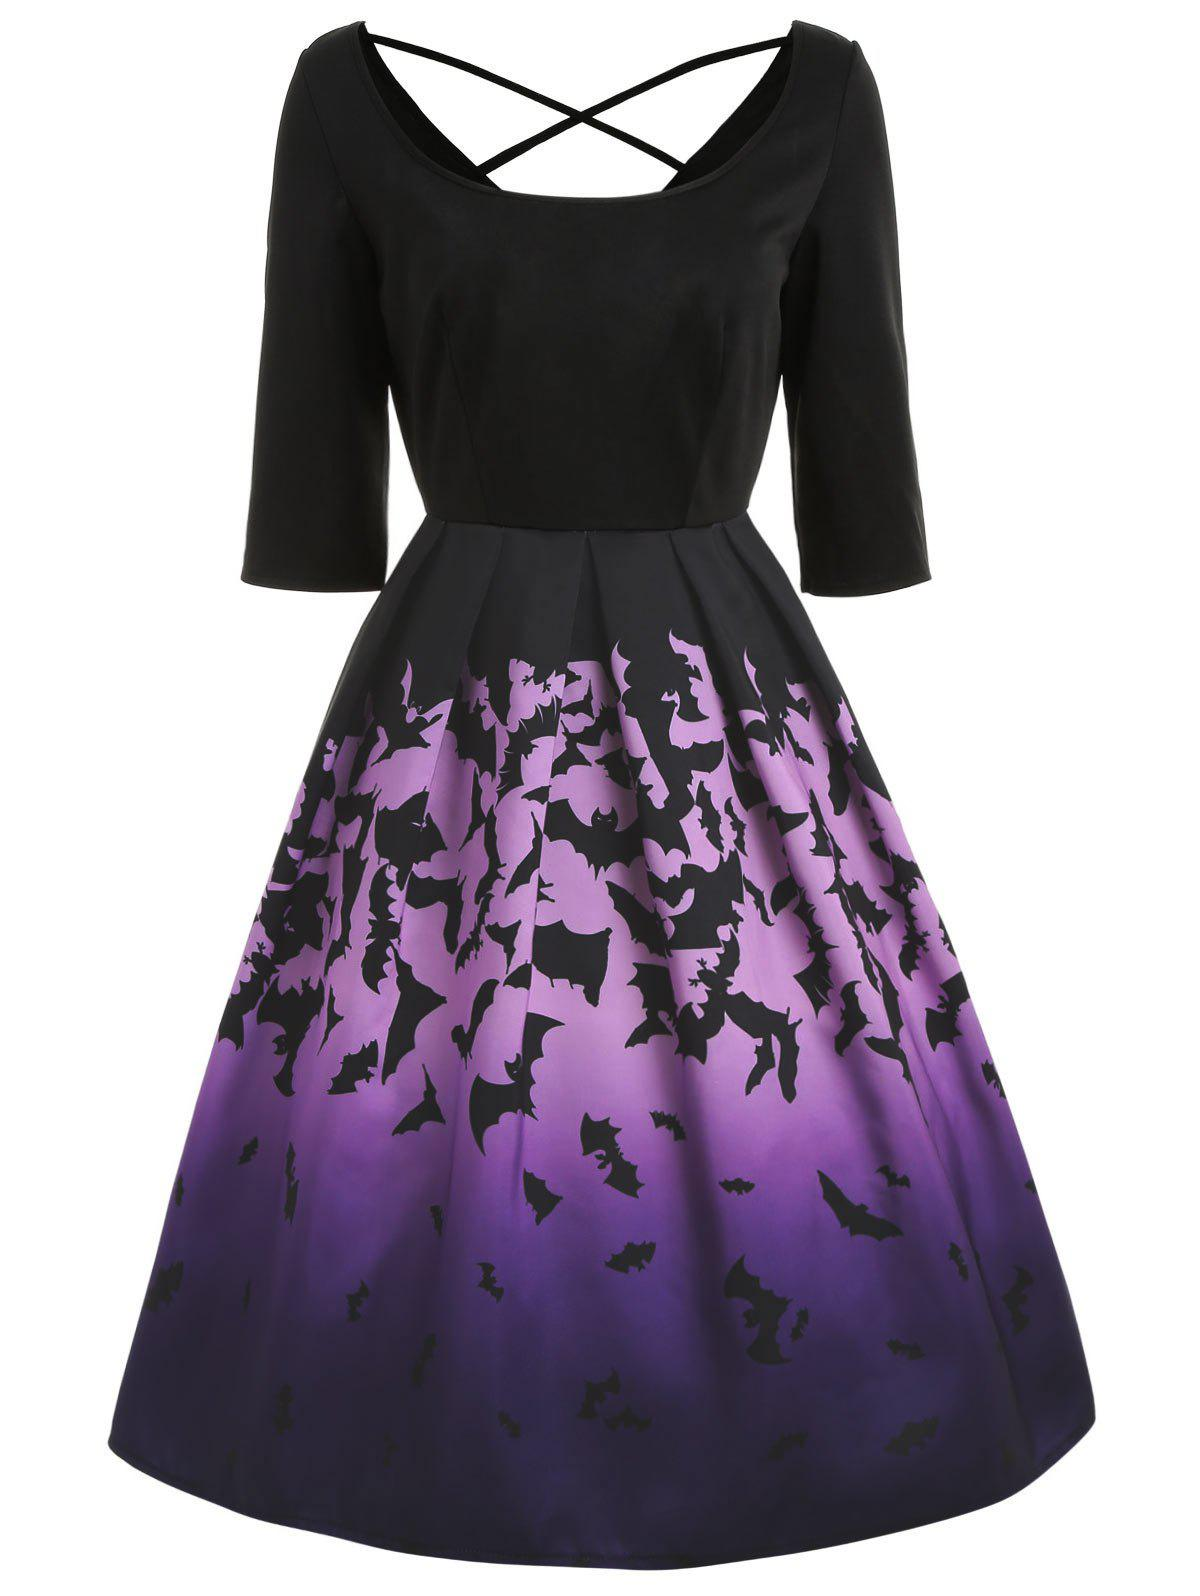 Discount Bats Print Square Collar Halloween Dress